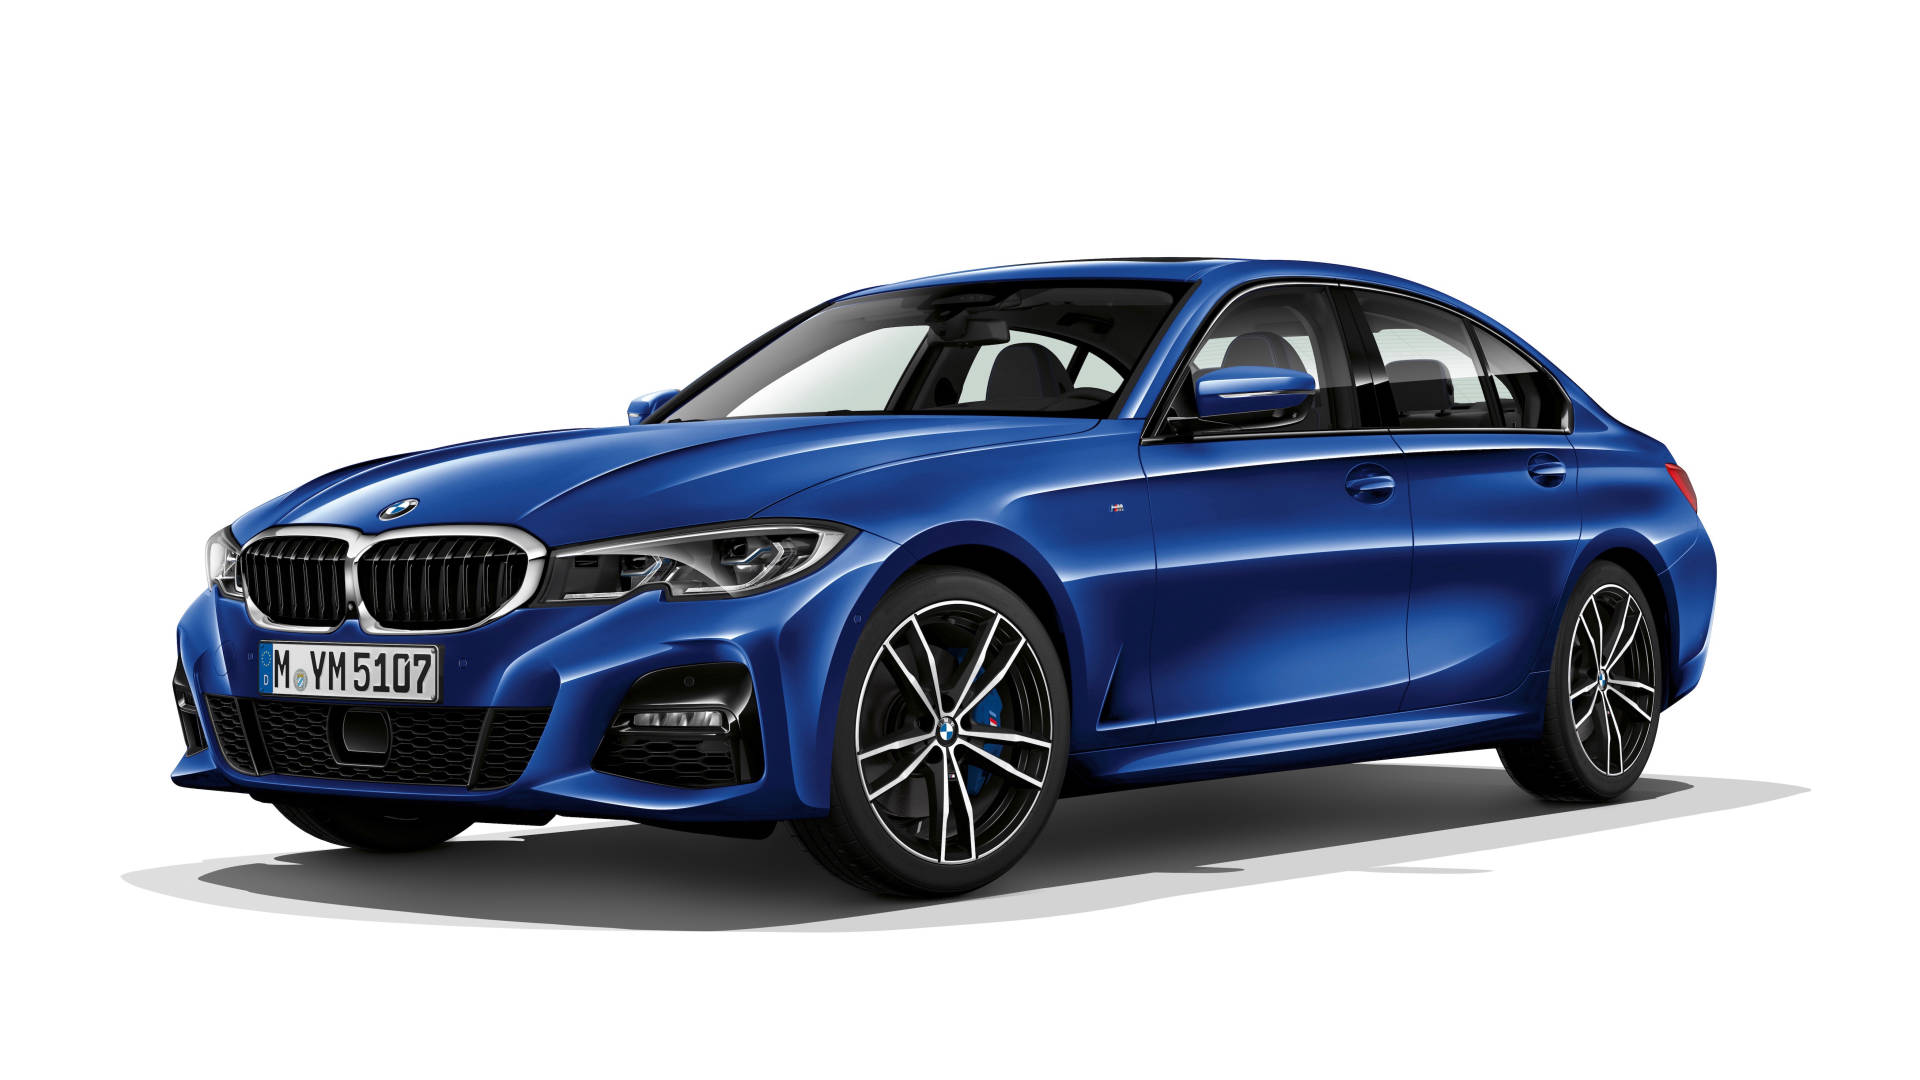 2019 BMW 3 Series front 3/4